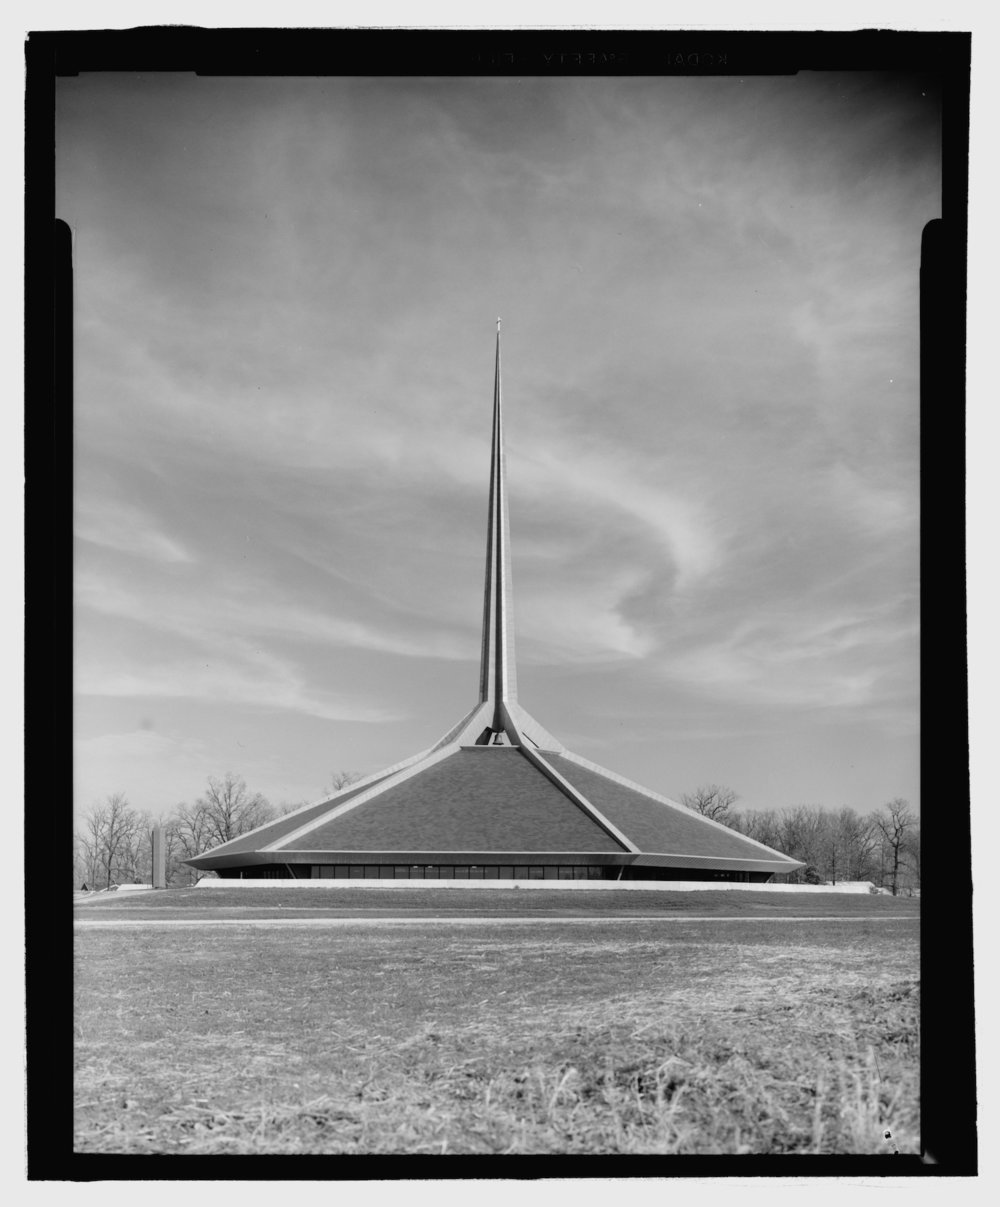 North Christian Church, Columbus, Ind. (ca. 1960). Image via Library of Congress.